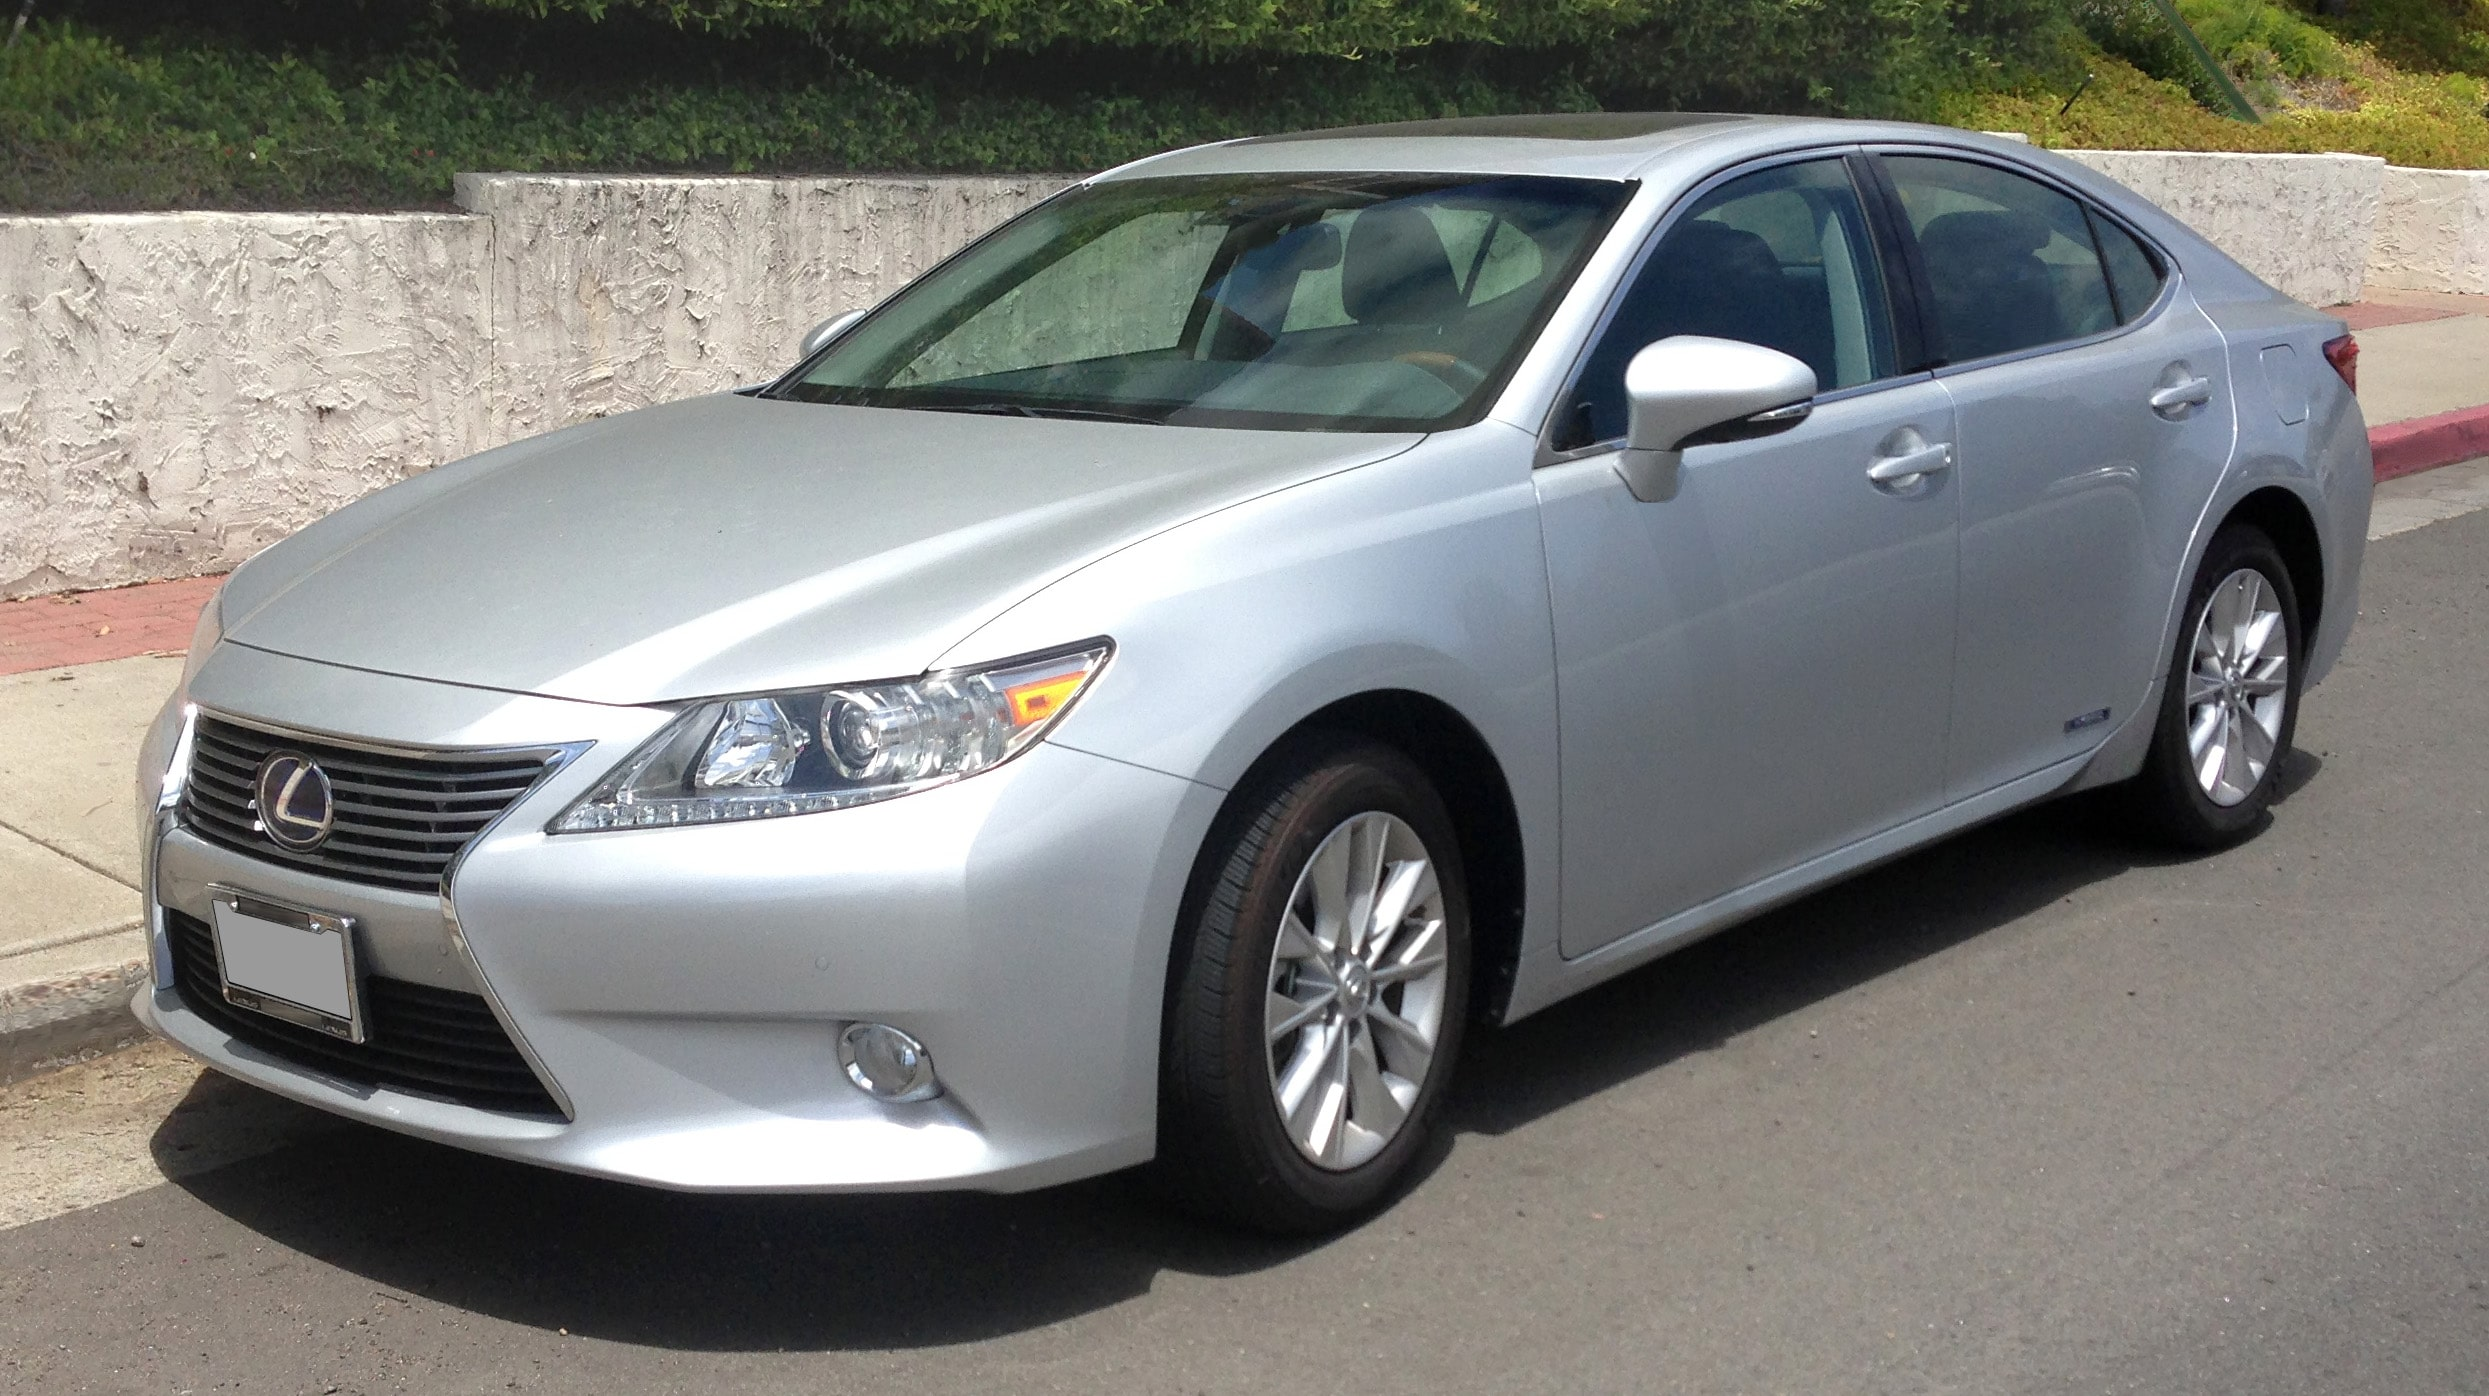 Lexus ES Windshield & Glass Repair in Phoenix